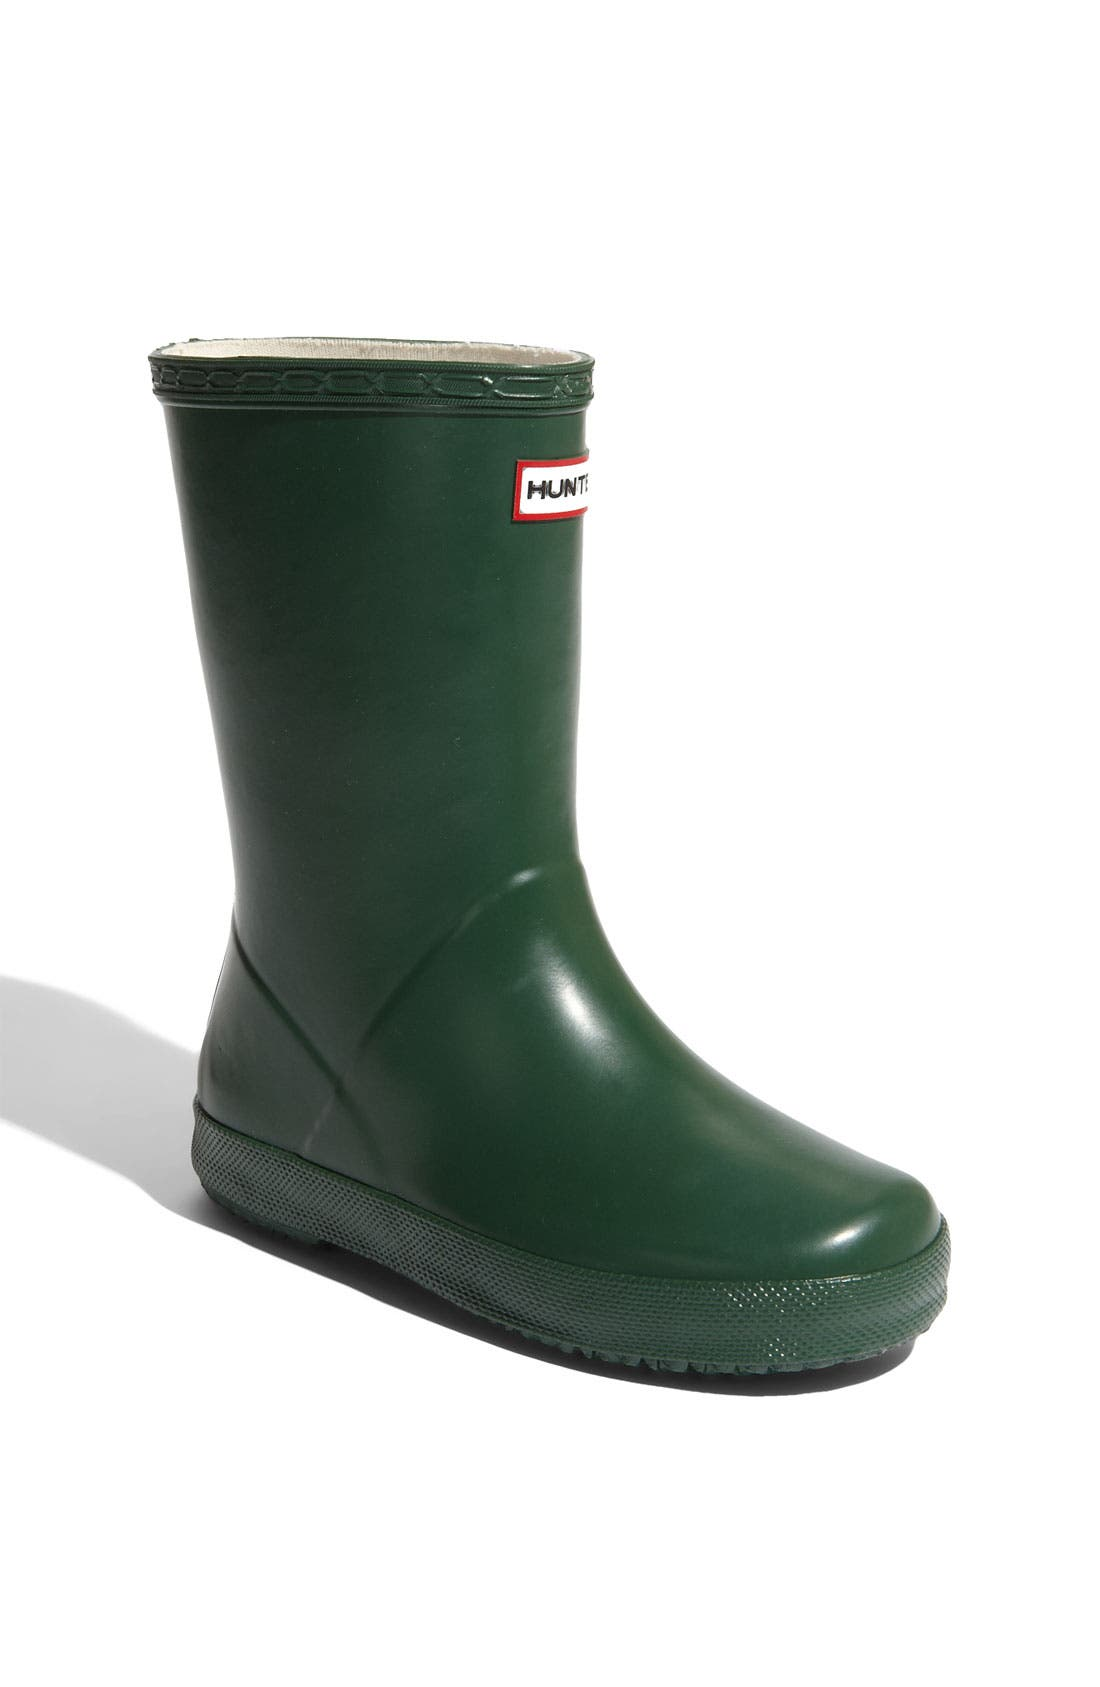 Alternate Image 1 Selected - Hunter 'Kid's First' Rain Boot (Walker, Toddler & Little Kid)